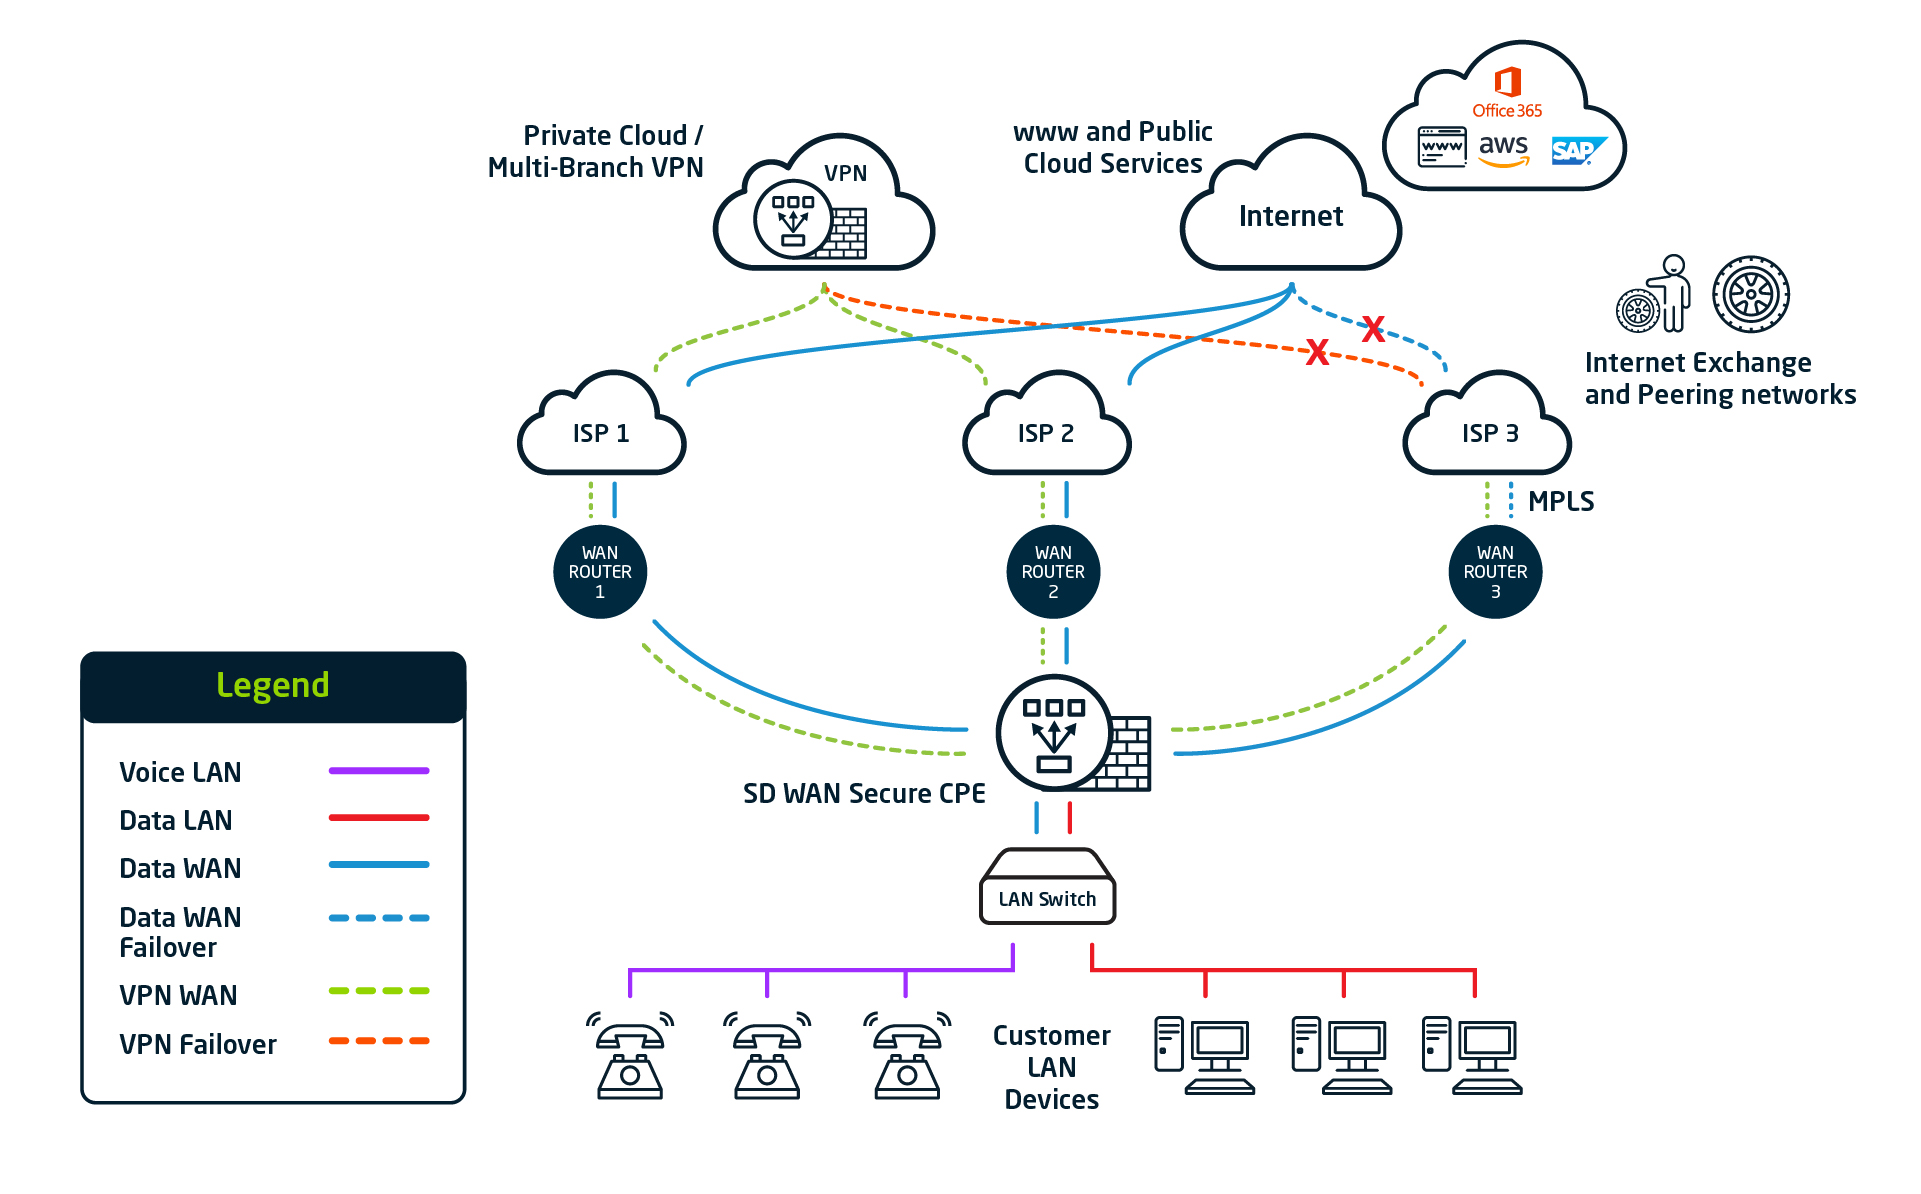 3430.1_SD-WAN_Fortinet_Secure_How_It_Works_Diagram_V2_25022021